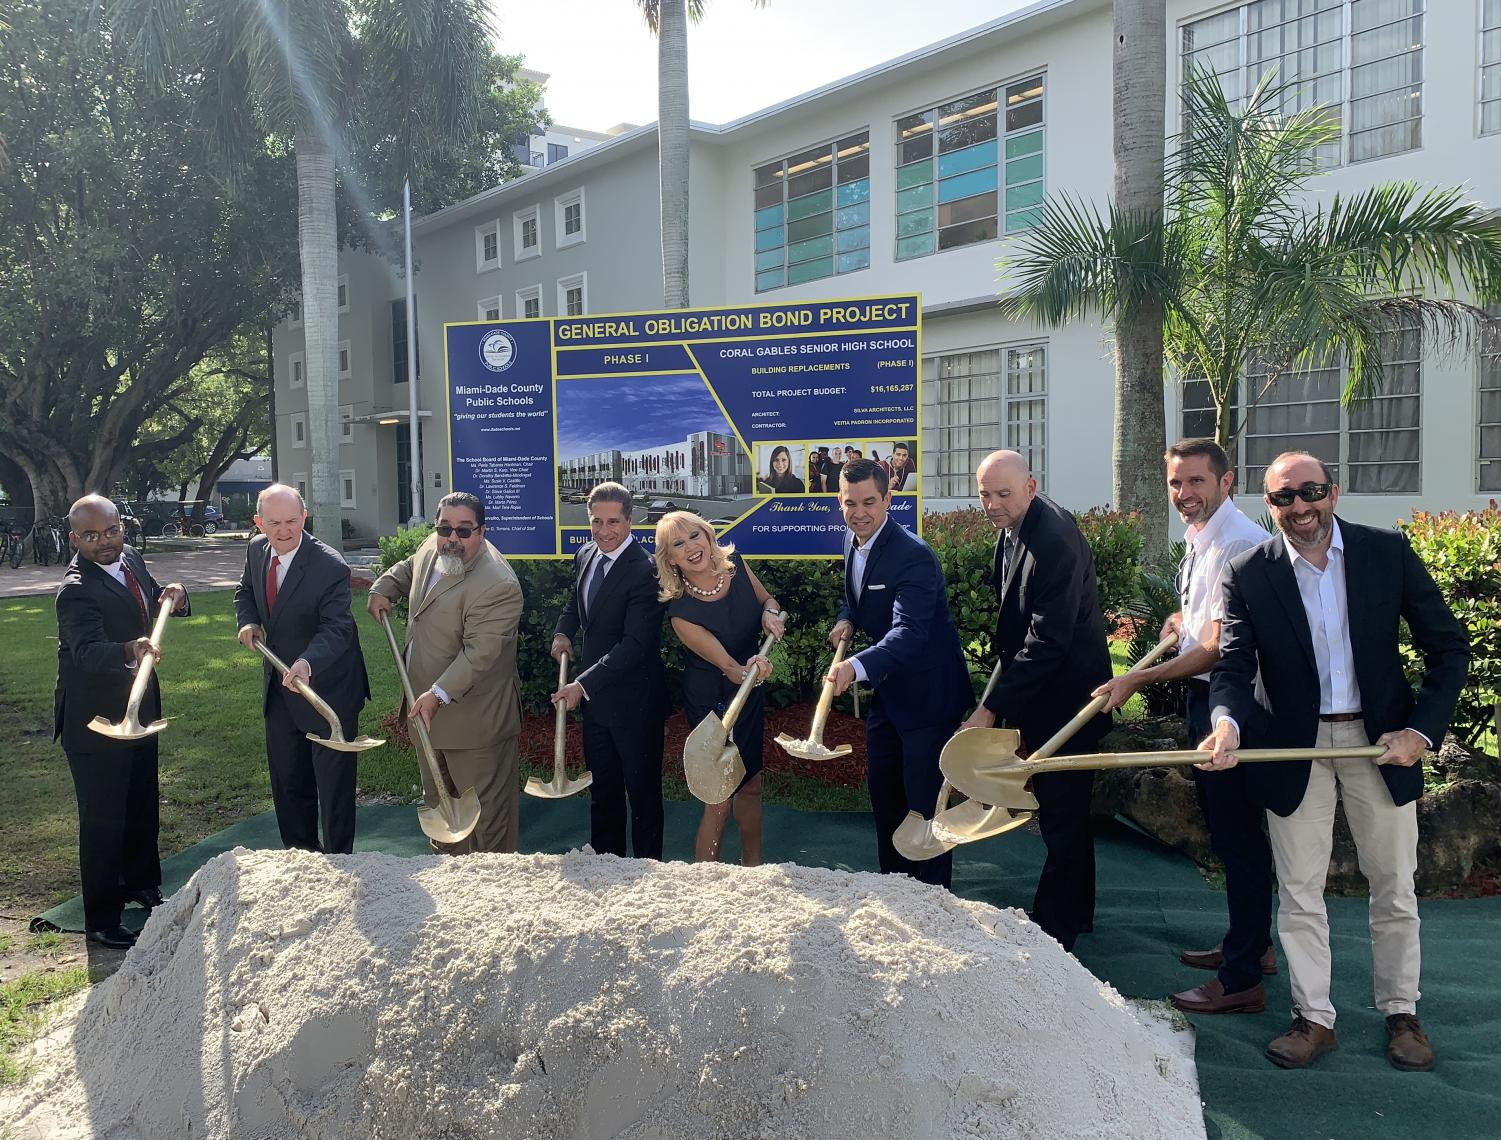 Miami Dade County Public School (MDCPS) board members along with school administrators gathered to celebrate this momentous day that marks the rebirth of Coral Gables Senior High (CGSH).